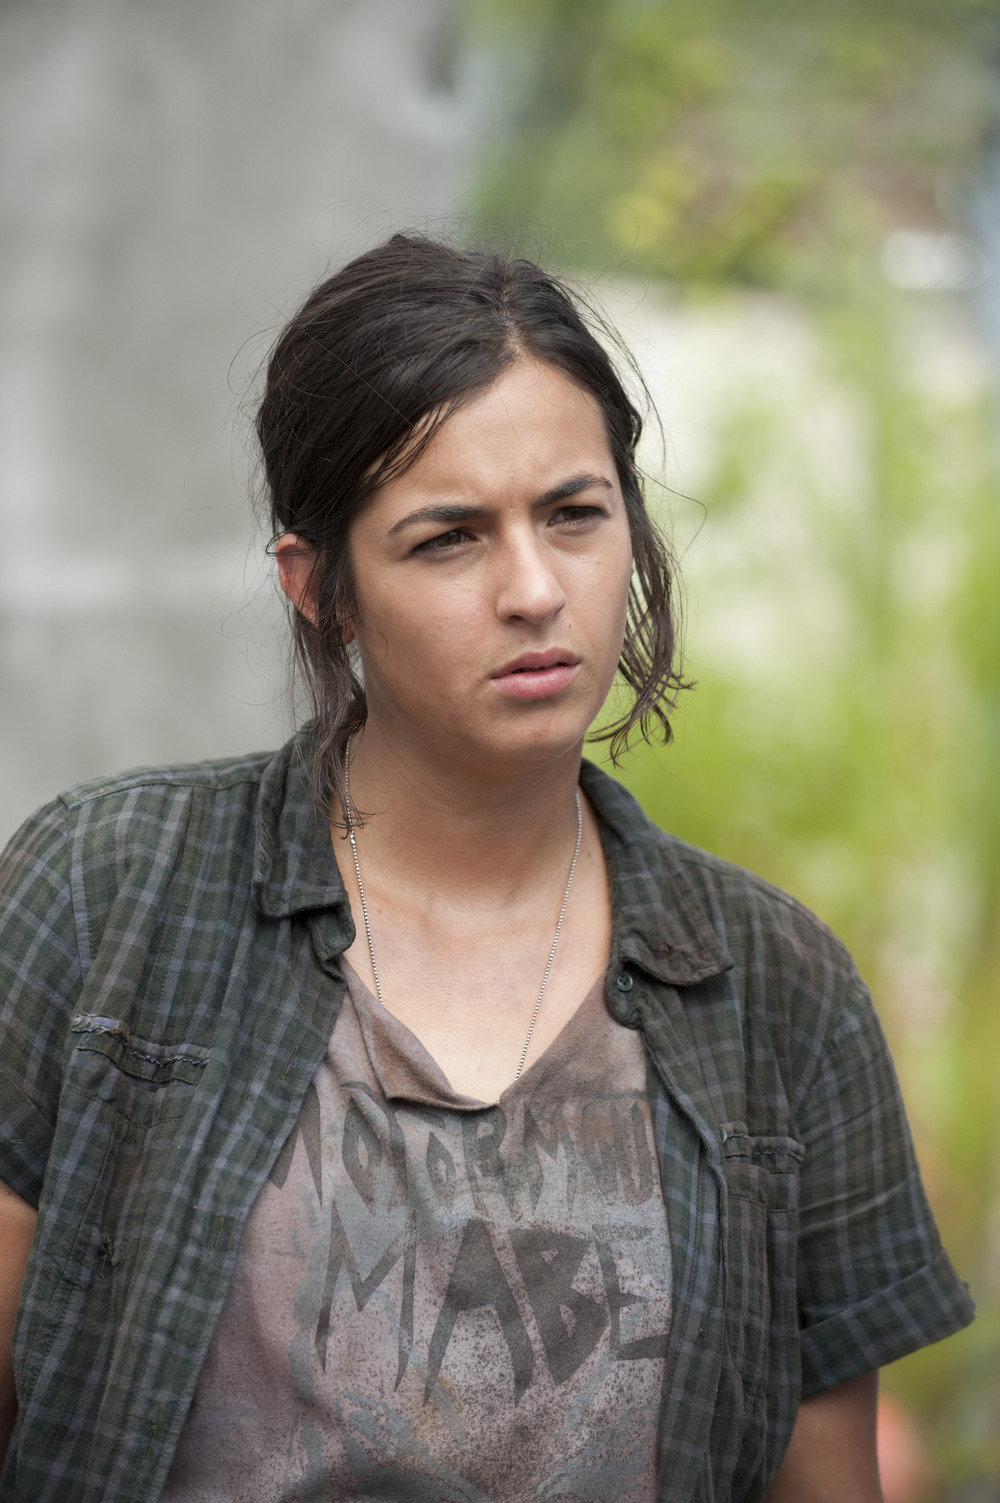 The Walking Dead Season 4: Will Tara Chambler Fit in With Team Prison? Alanna Masterson Says… (VIDEO)